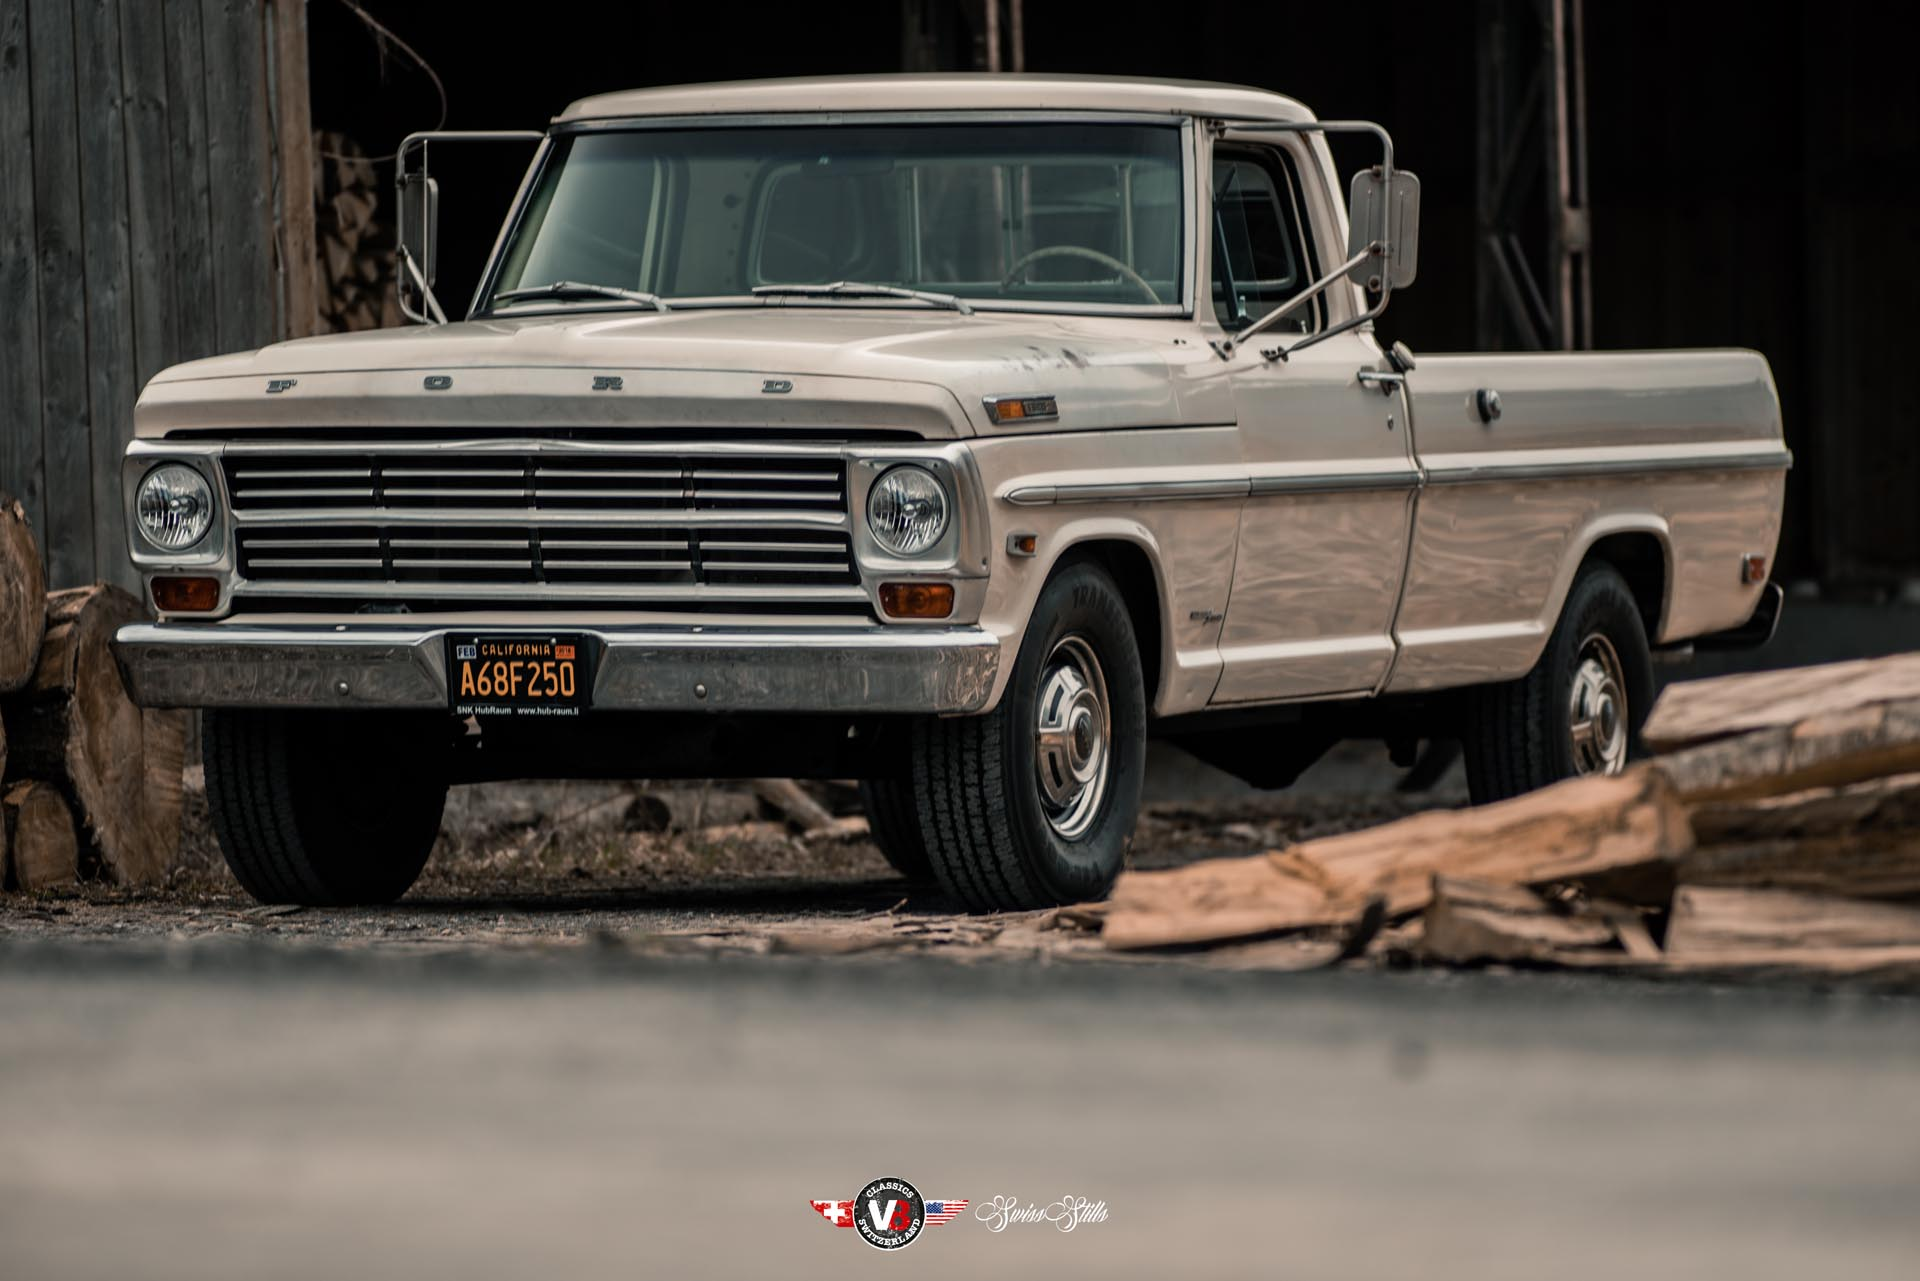 1968 Ford F-250 Camper Special